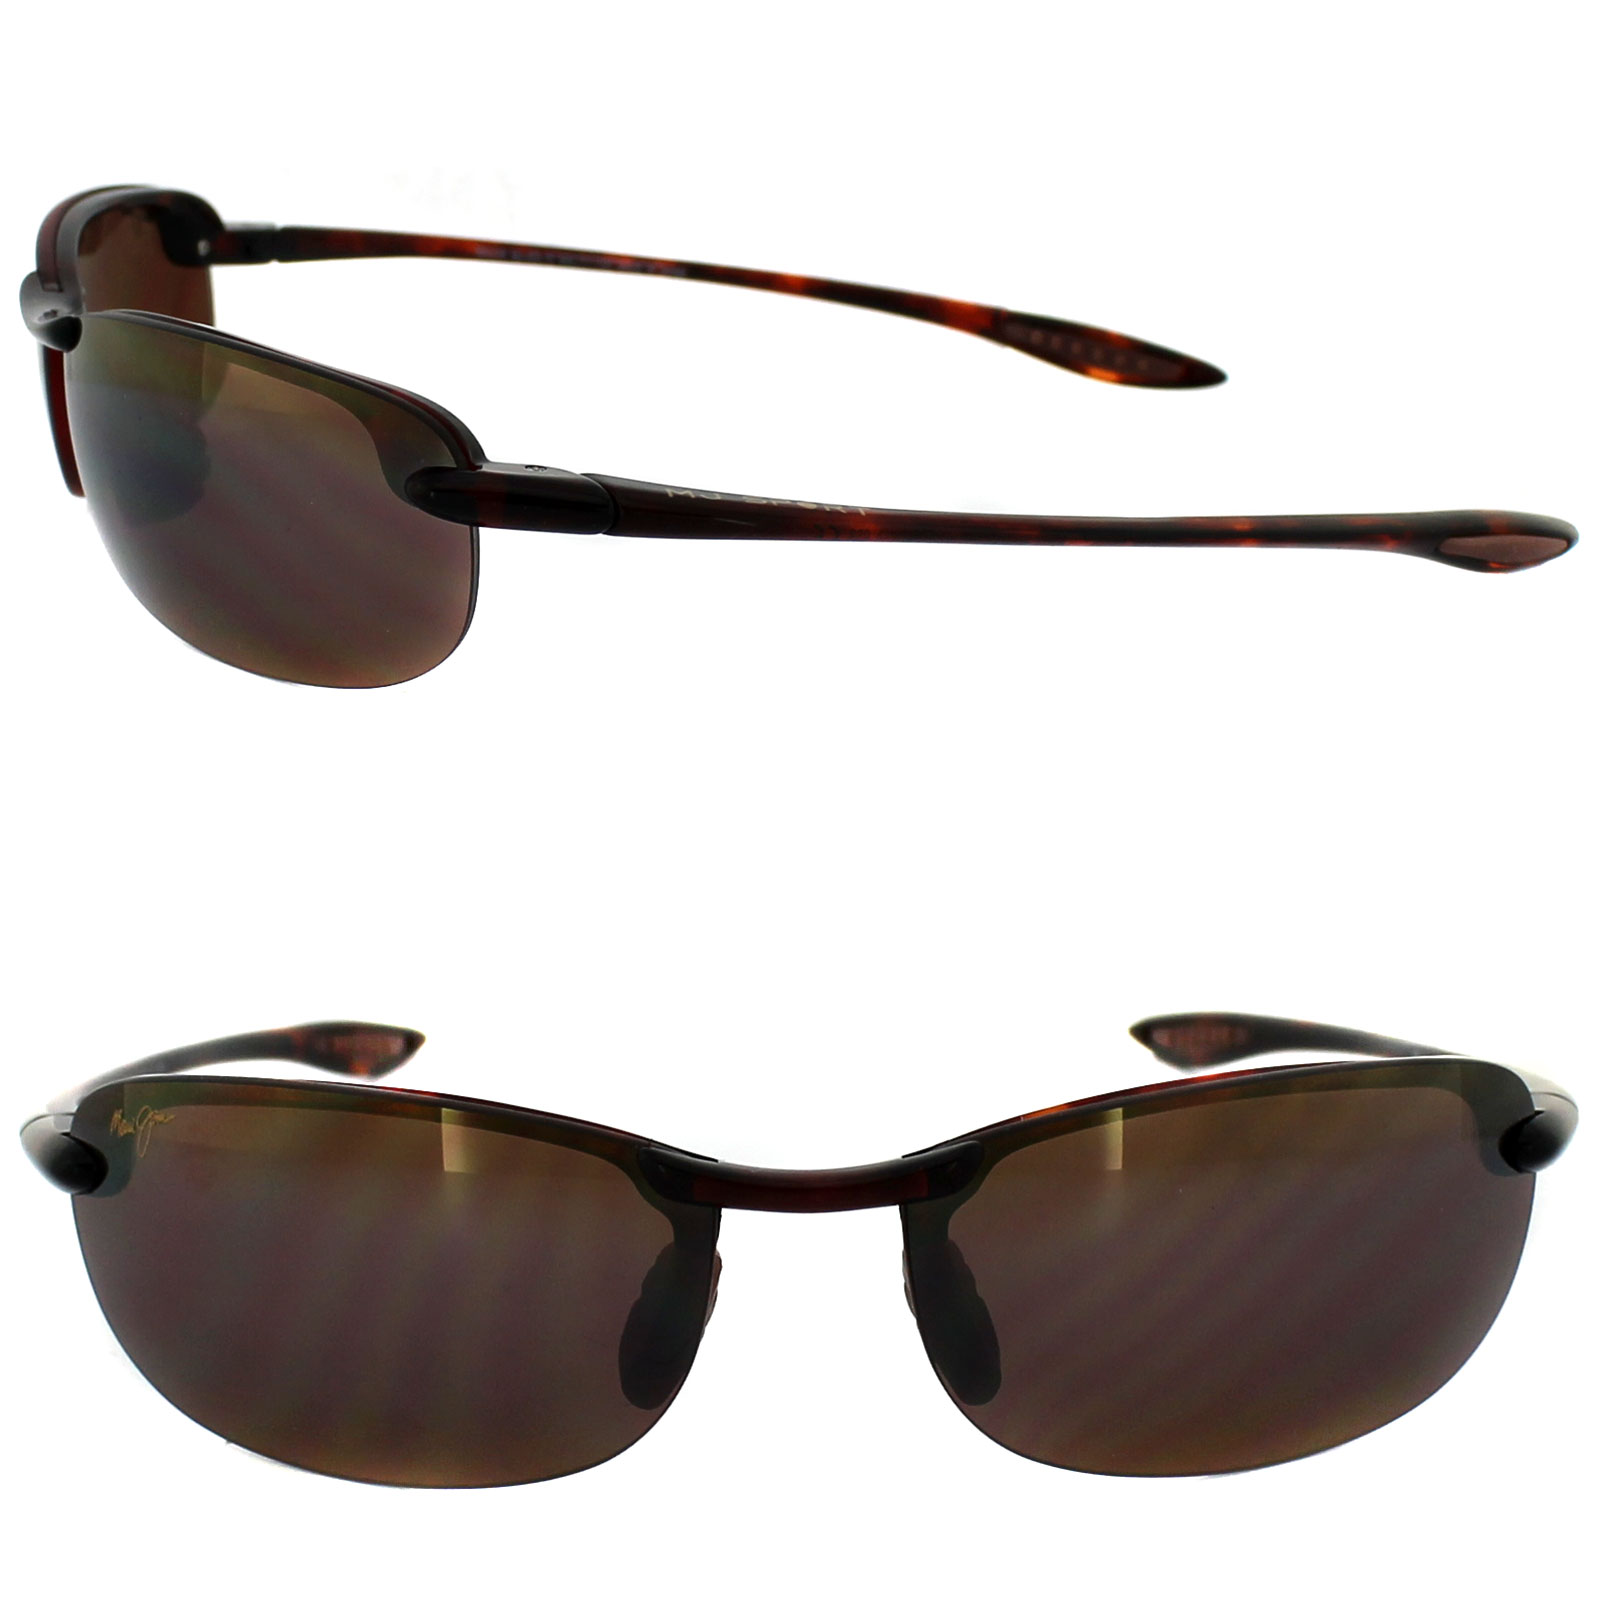 EyeSave is the largest retailer of discount designer sunglasses since Low prices on Ray-Ban, Maui Jim, Tom Ford, Gucci and many more. Free shipping.